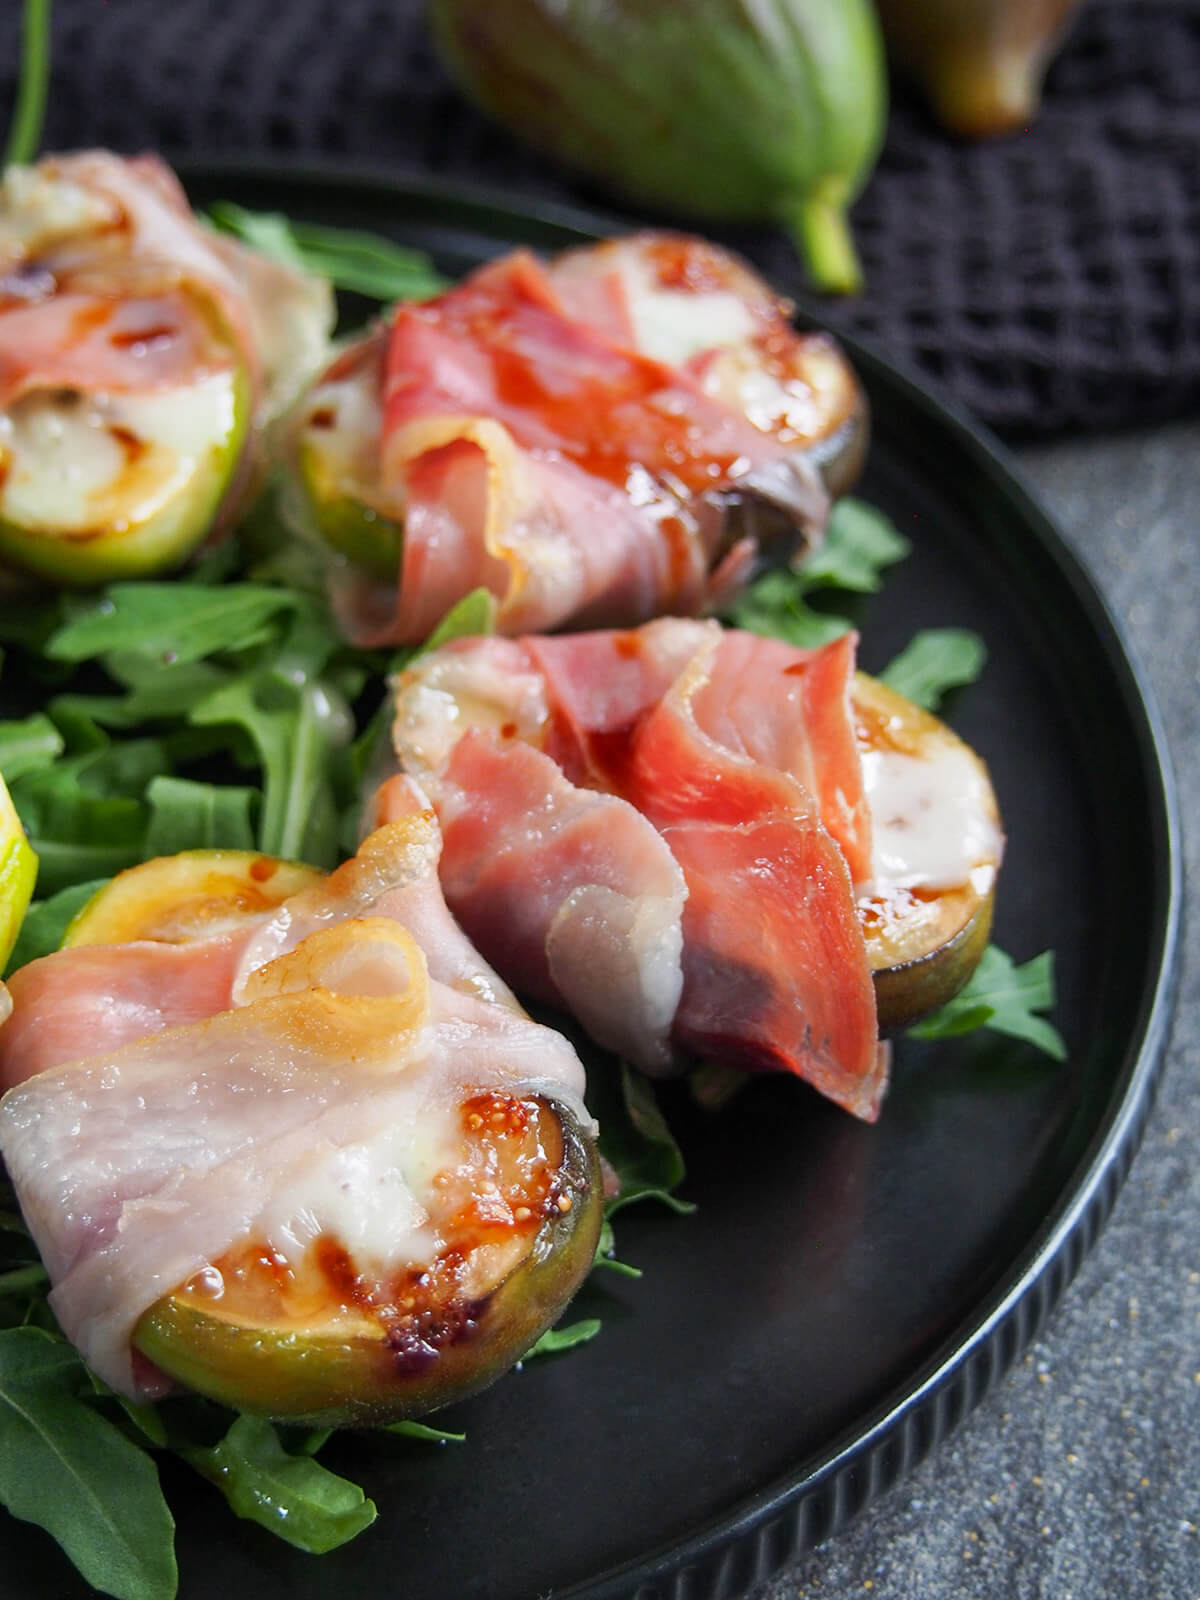 side view of prosciutto wrapped figs on black plate